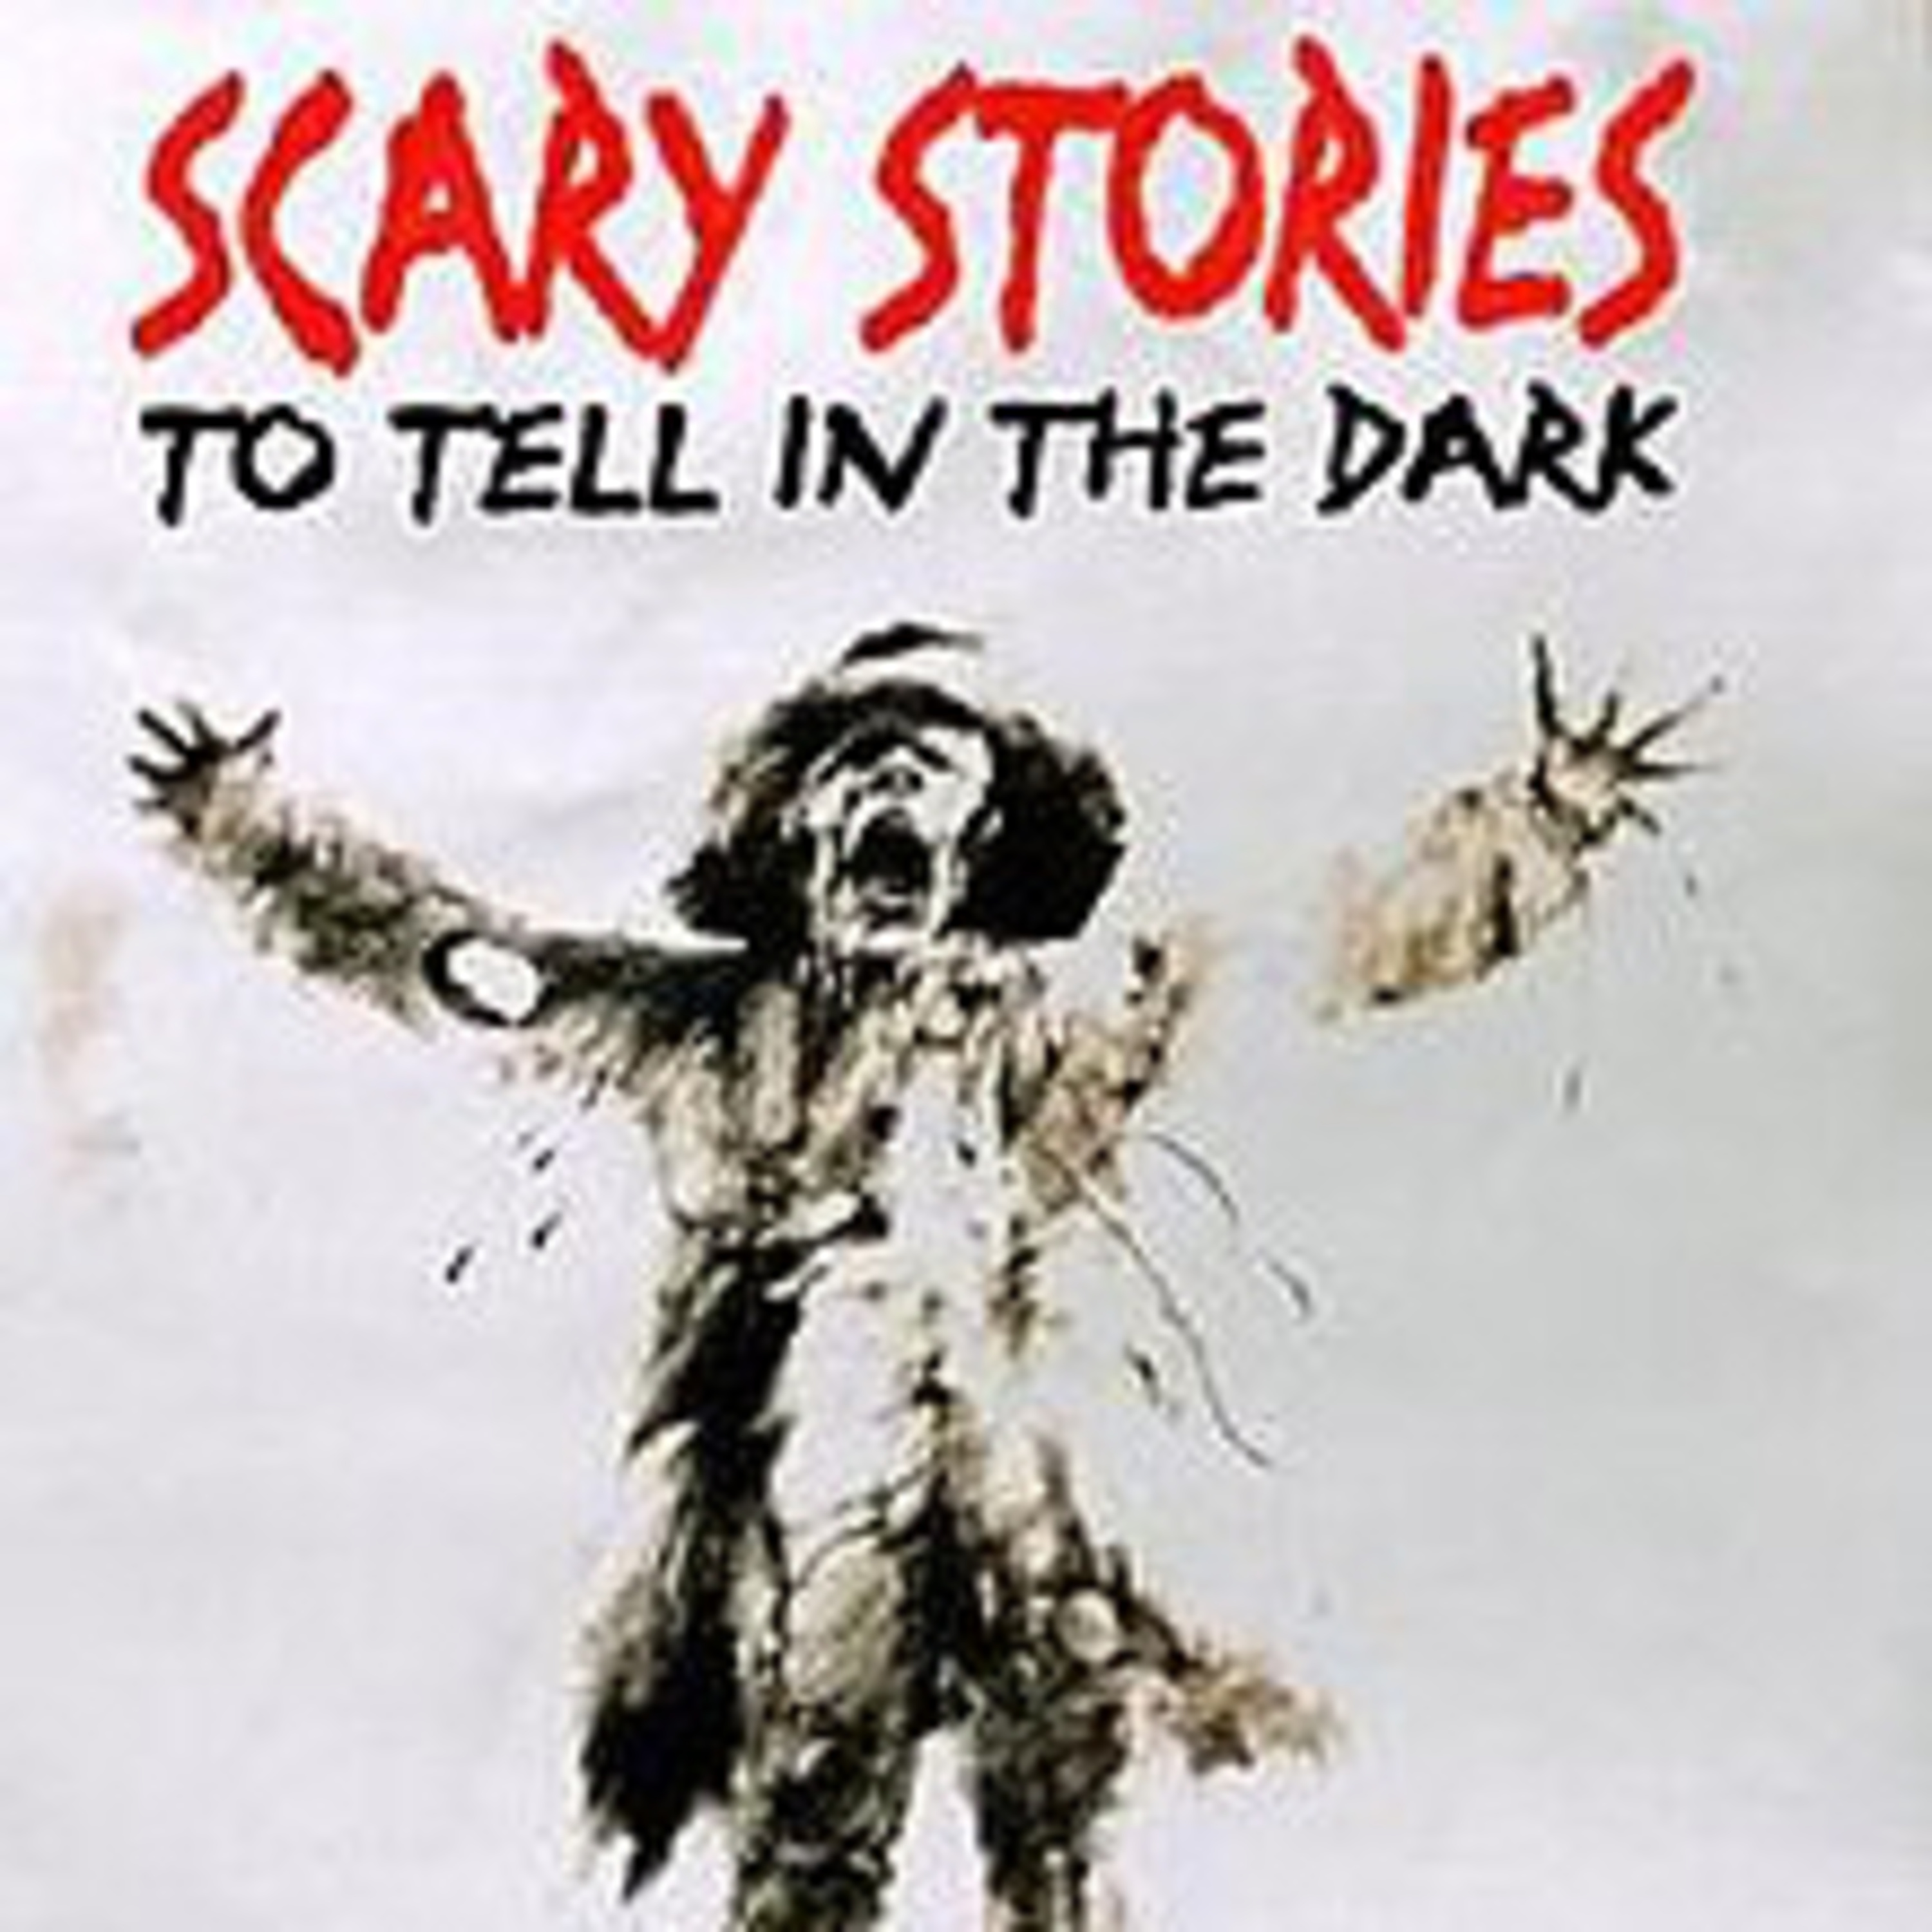 Epi 4 - Scary Stories to Tell in the Dark